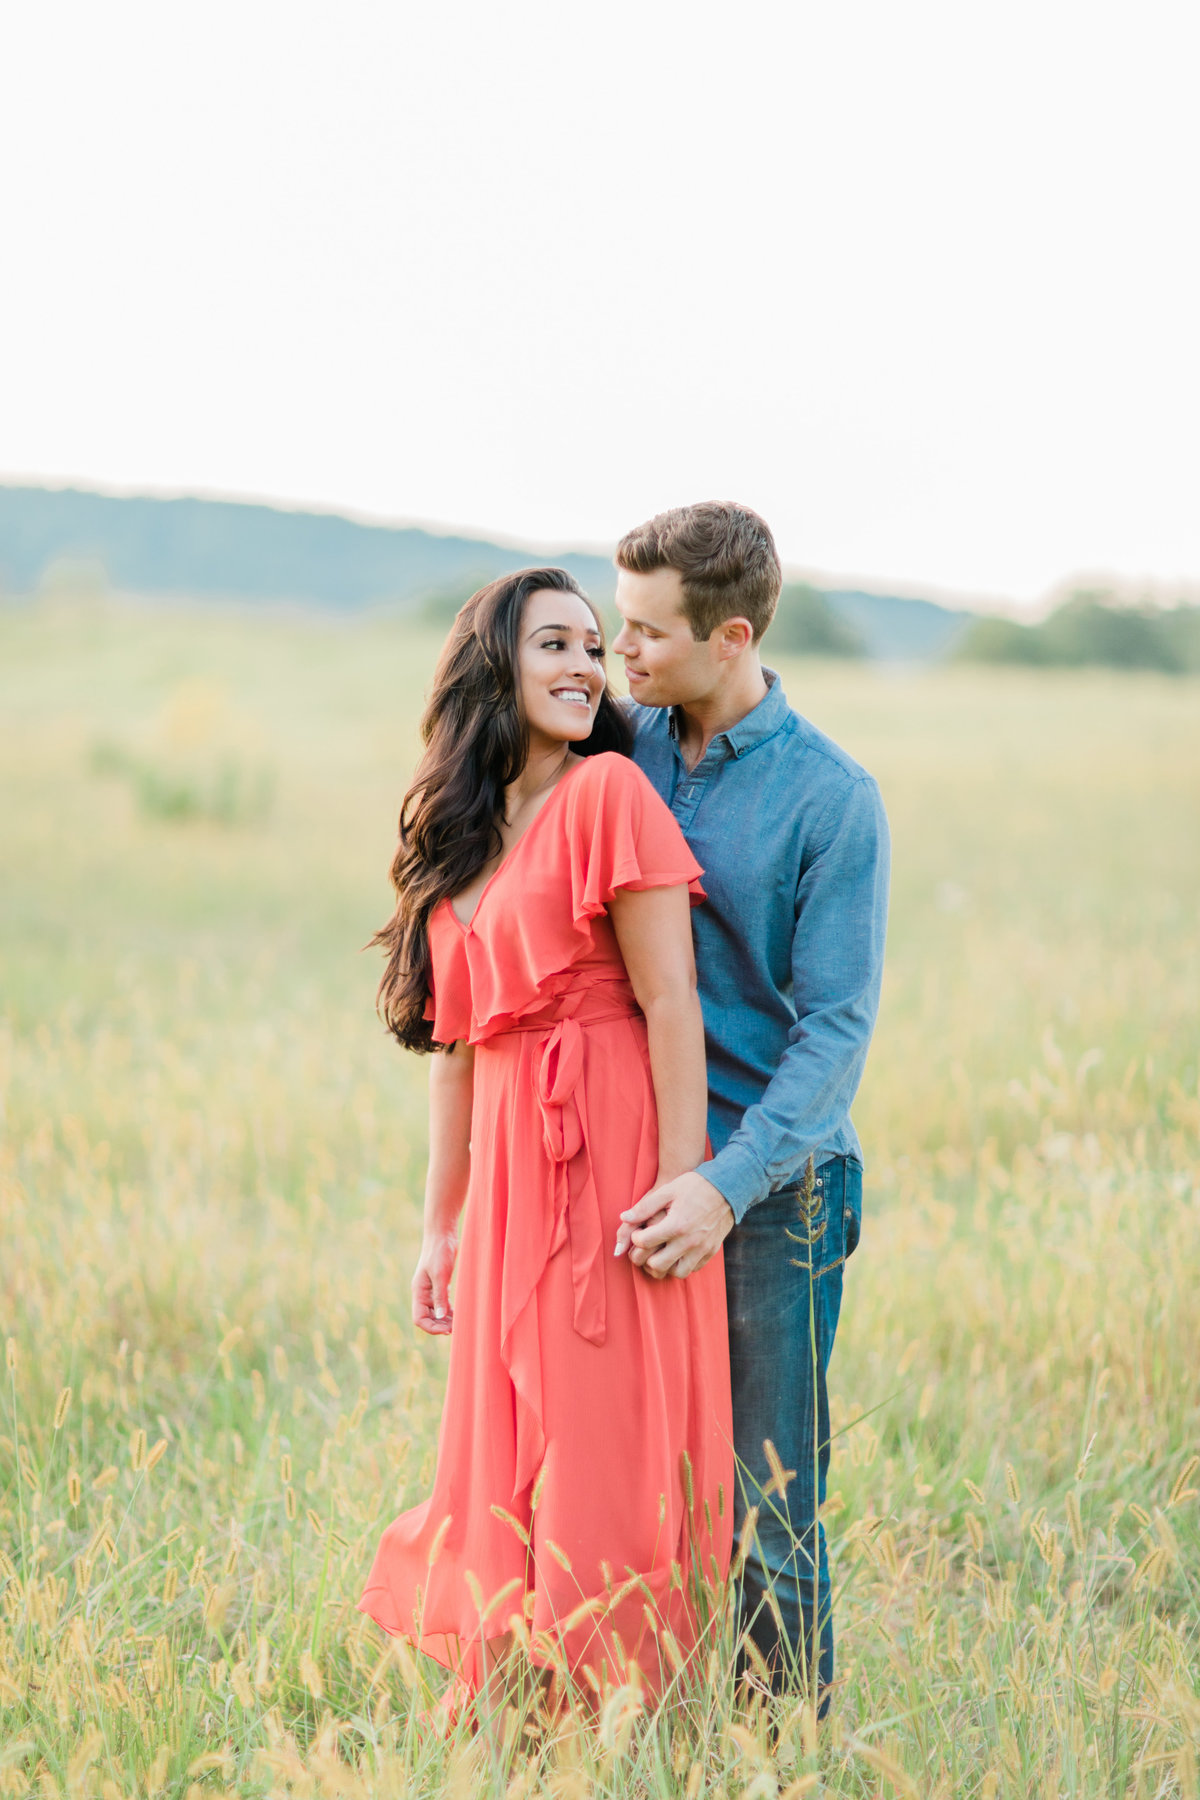 SkyMeadowsPark_Virginia_Engagement_Session_AngelikaJohnsPhotography-0554